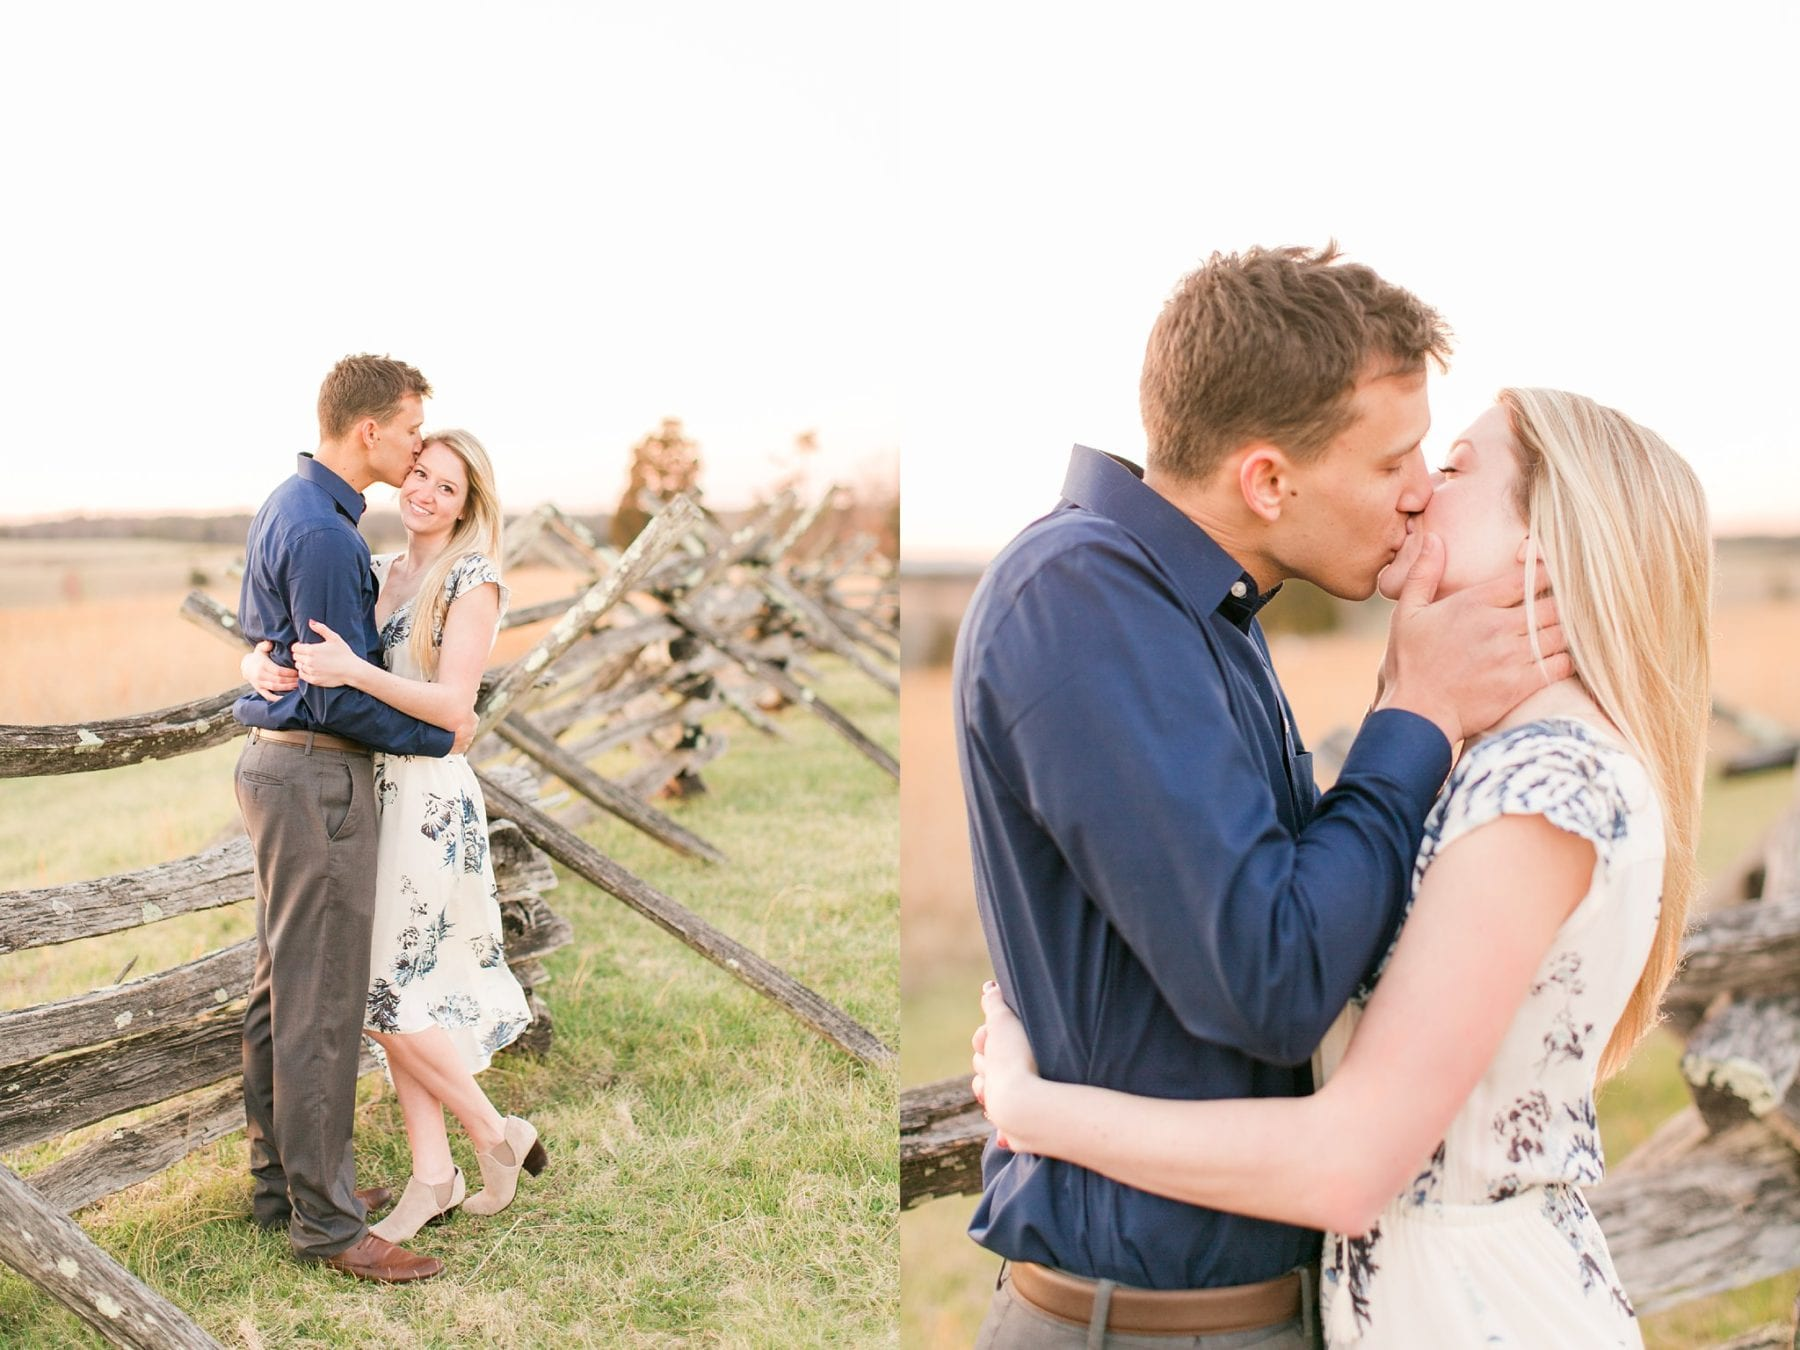 Manassas Battlefield Engagement Session Virginia Wedding Photographer Danielle & Charlie Megan Kelsey Photography-6355.jpg